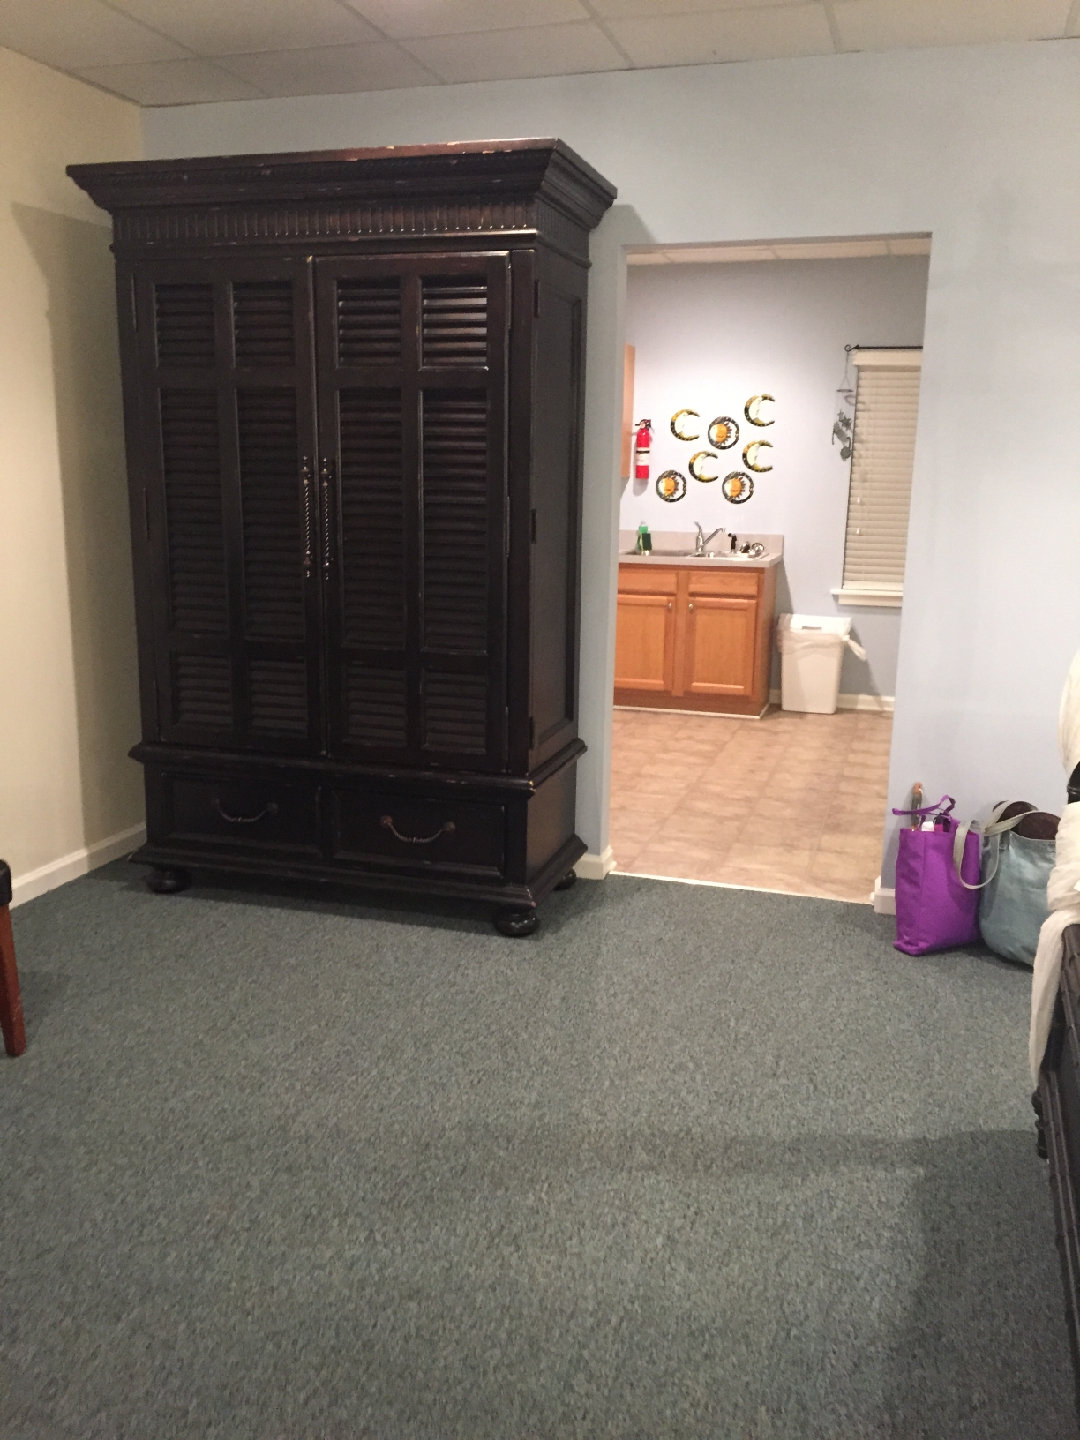 House cleaning estimate